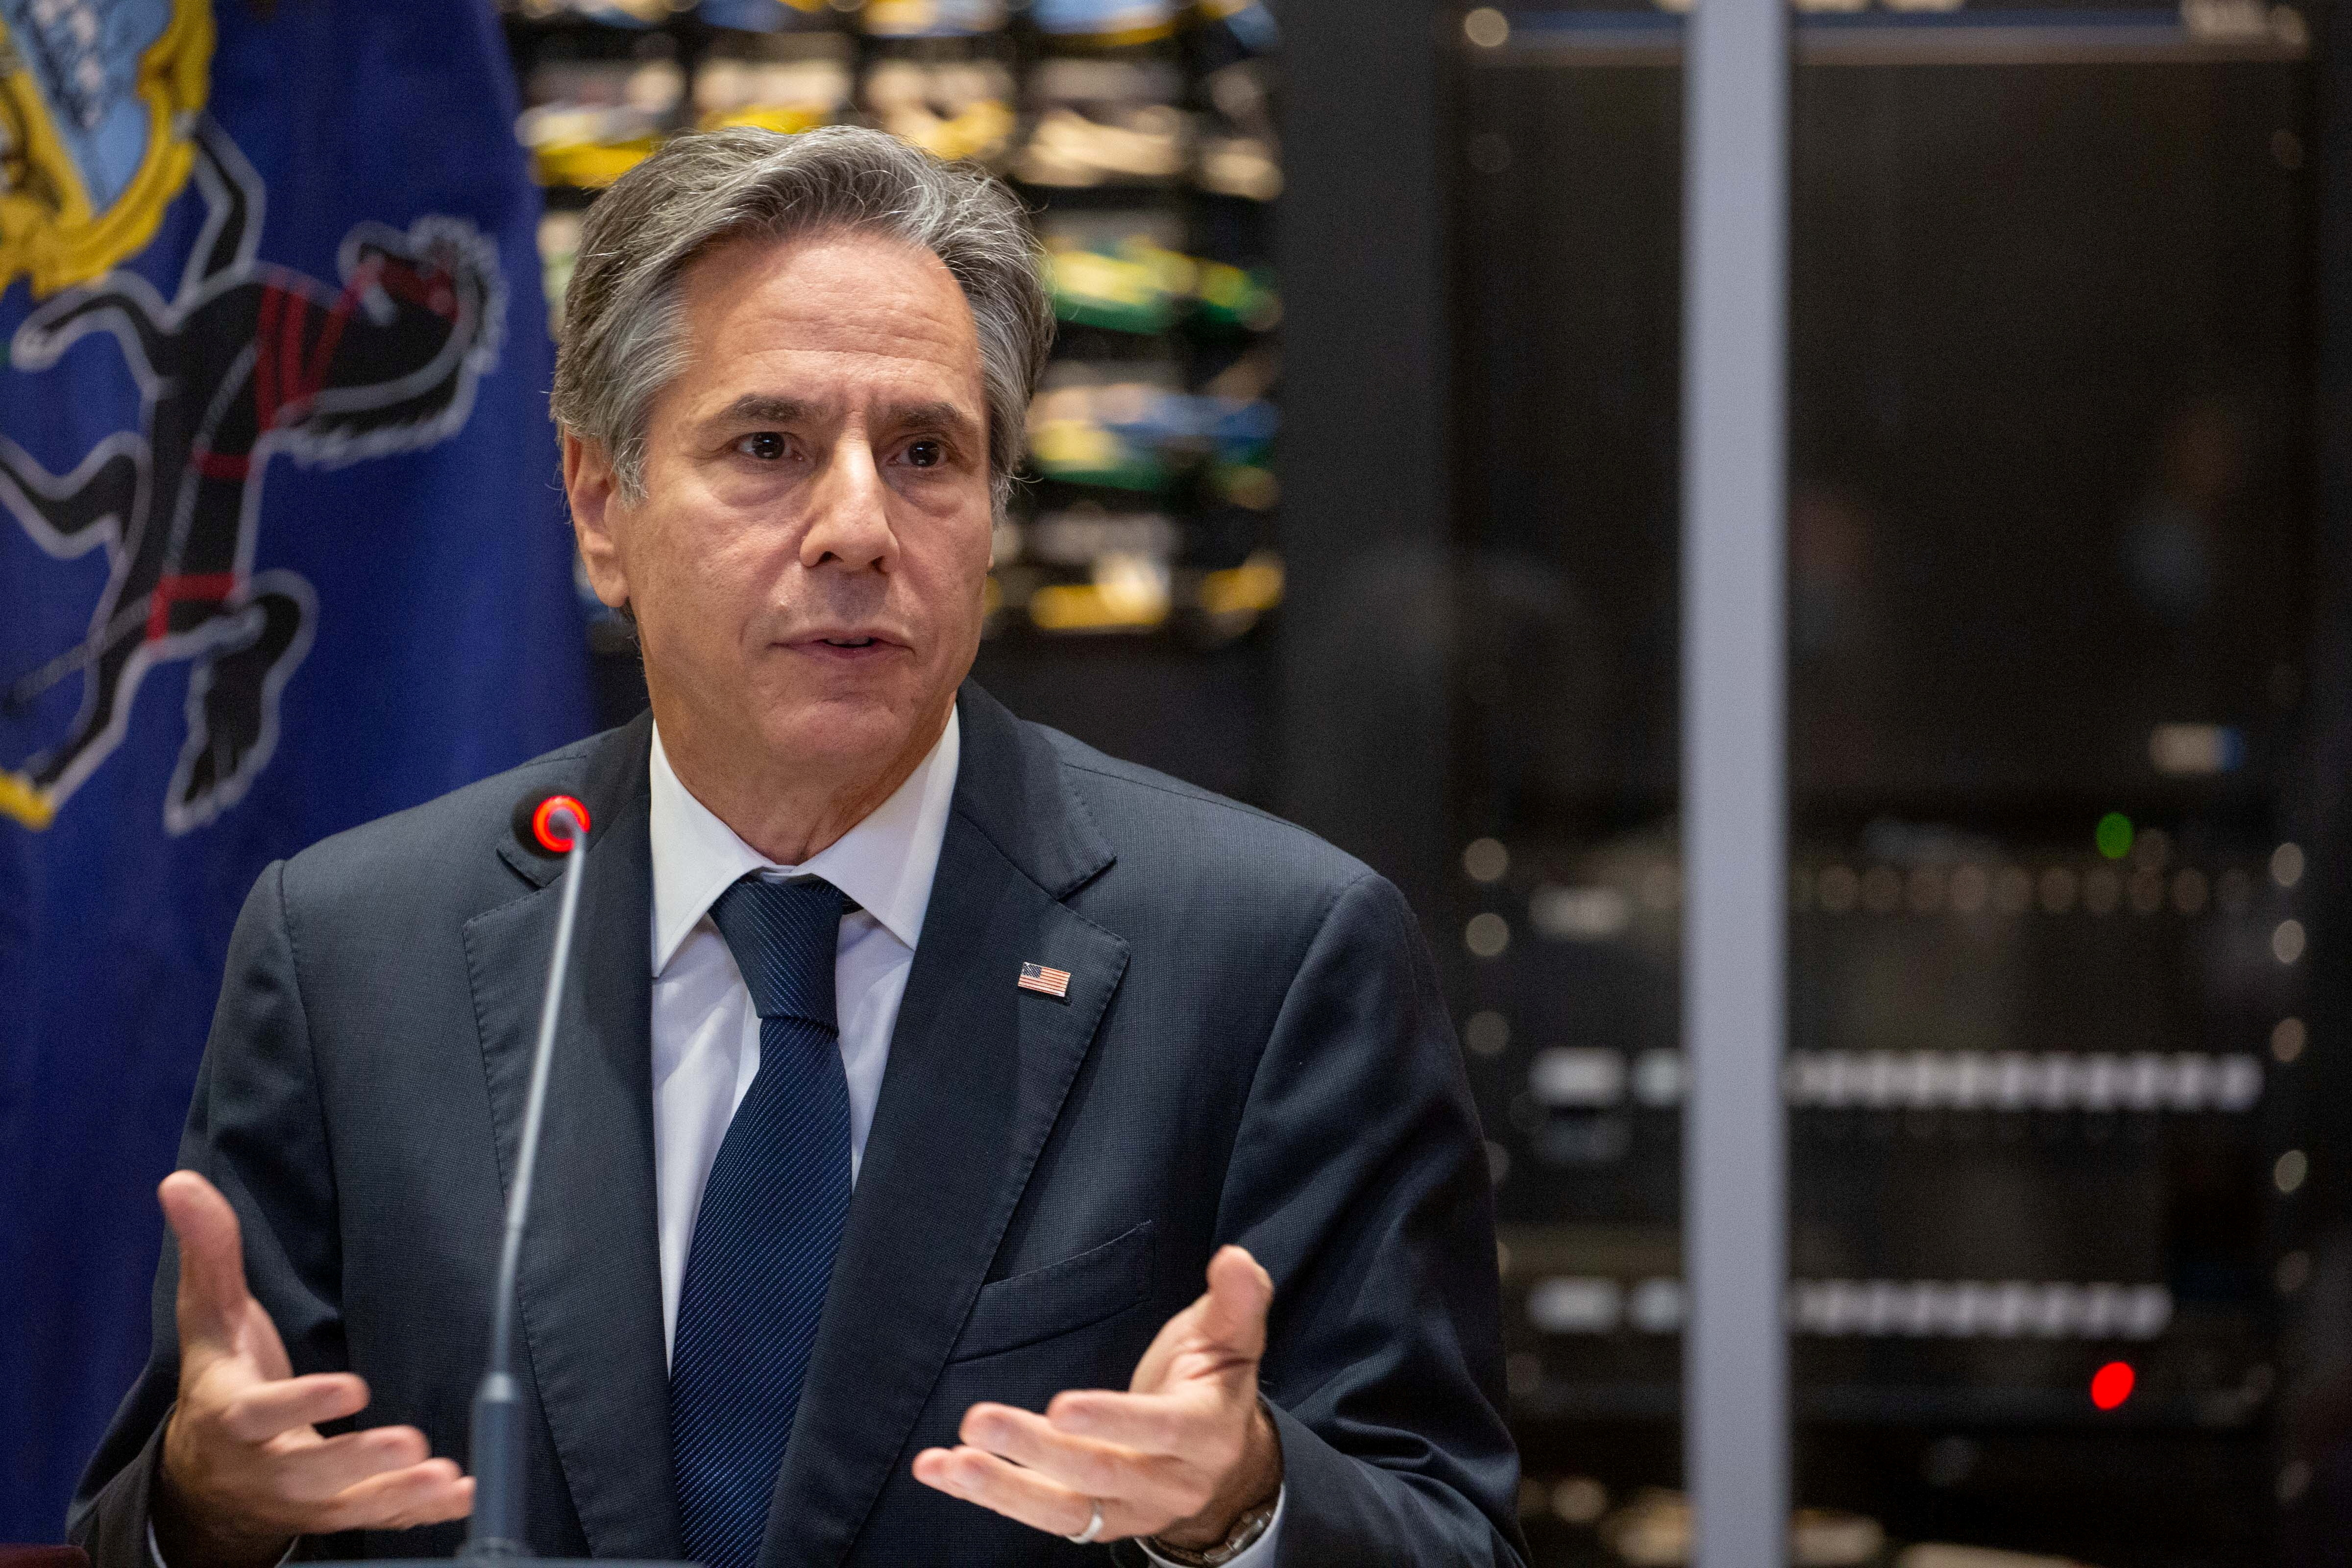 U.S. Secretary of State Antony Blinken gives opening remarks as he meets with local labor leaders at the IBEW Local #5 in Pittsburgh, Pennsylvania, U.S. September 30, 2021, Rebecca Droke/Pool via REUTERS/File Photo